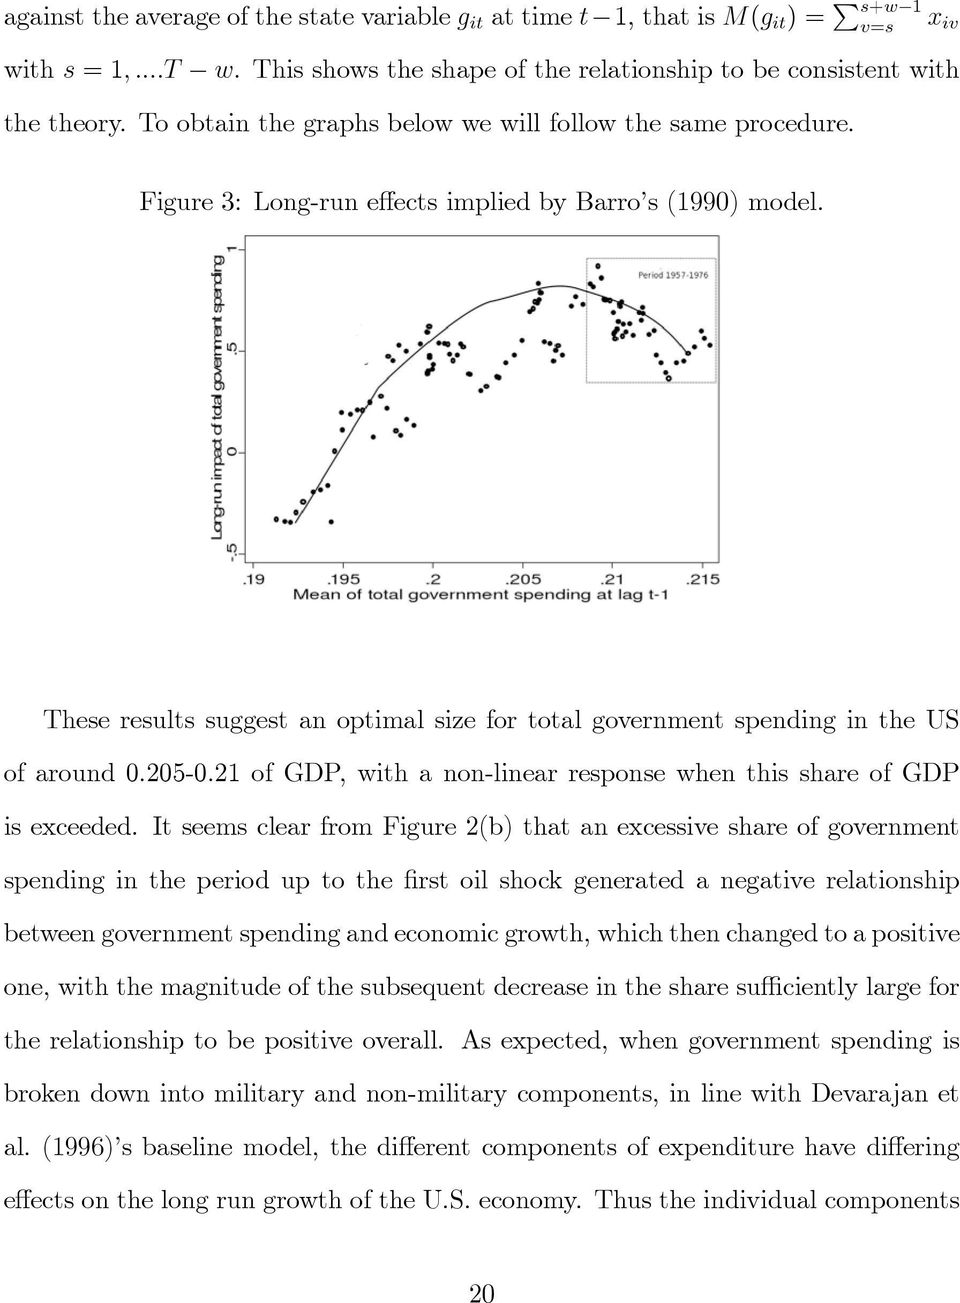 These results suggest an optimal size for total government spending in the US of around 0:205-0:21 of GDP, with a non-linear response when this share of GDP is exceeded.